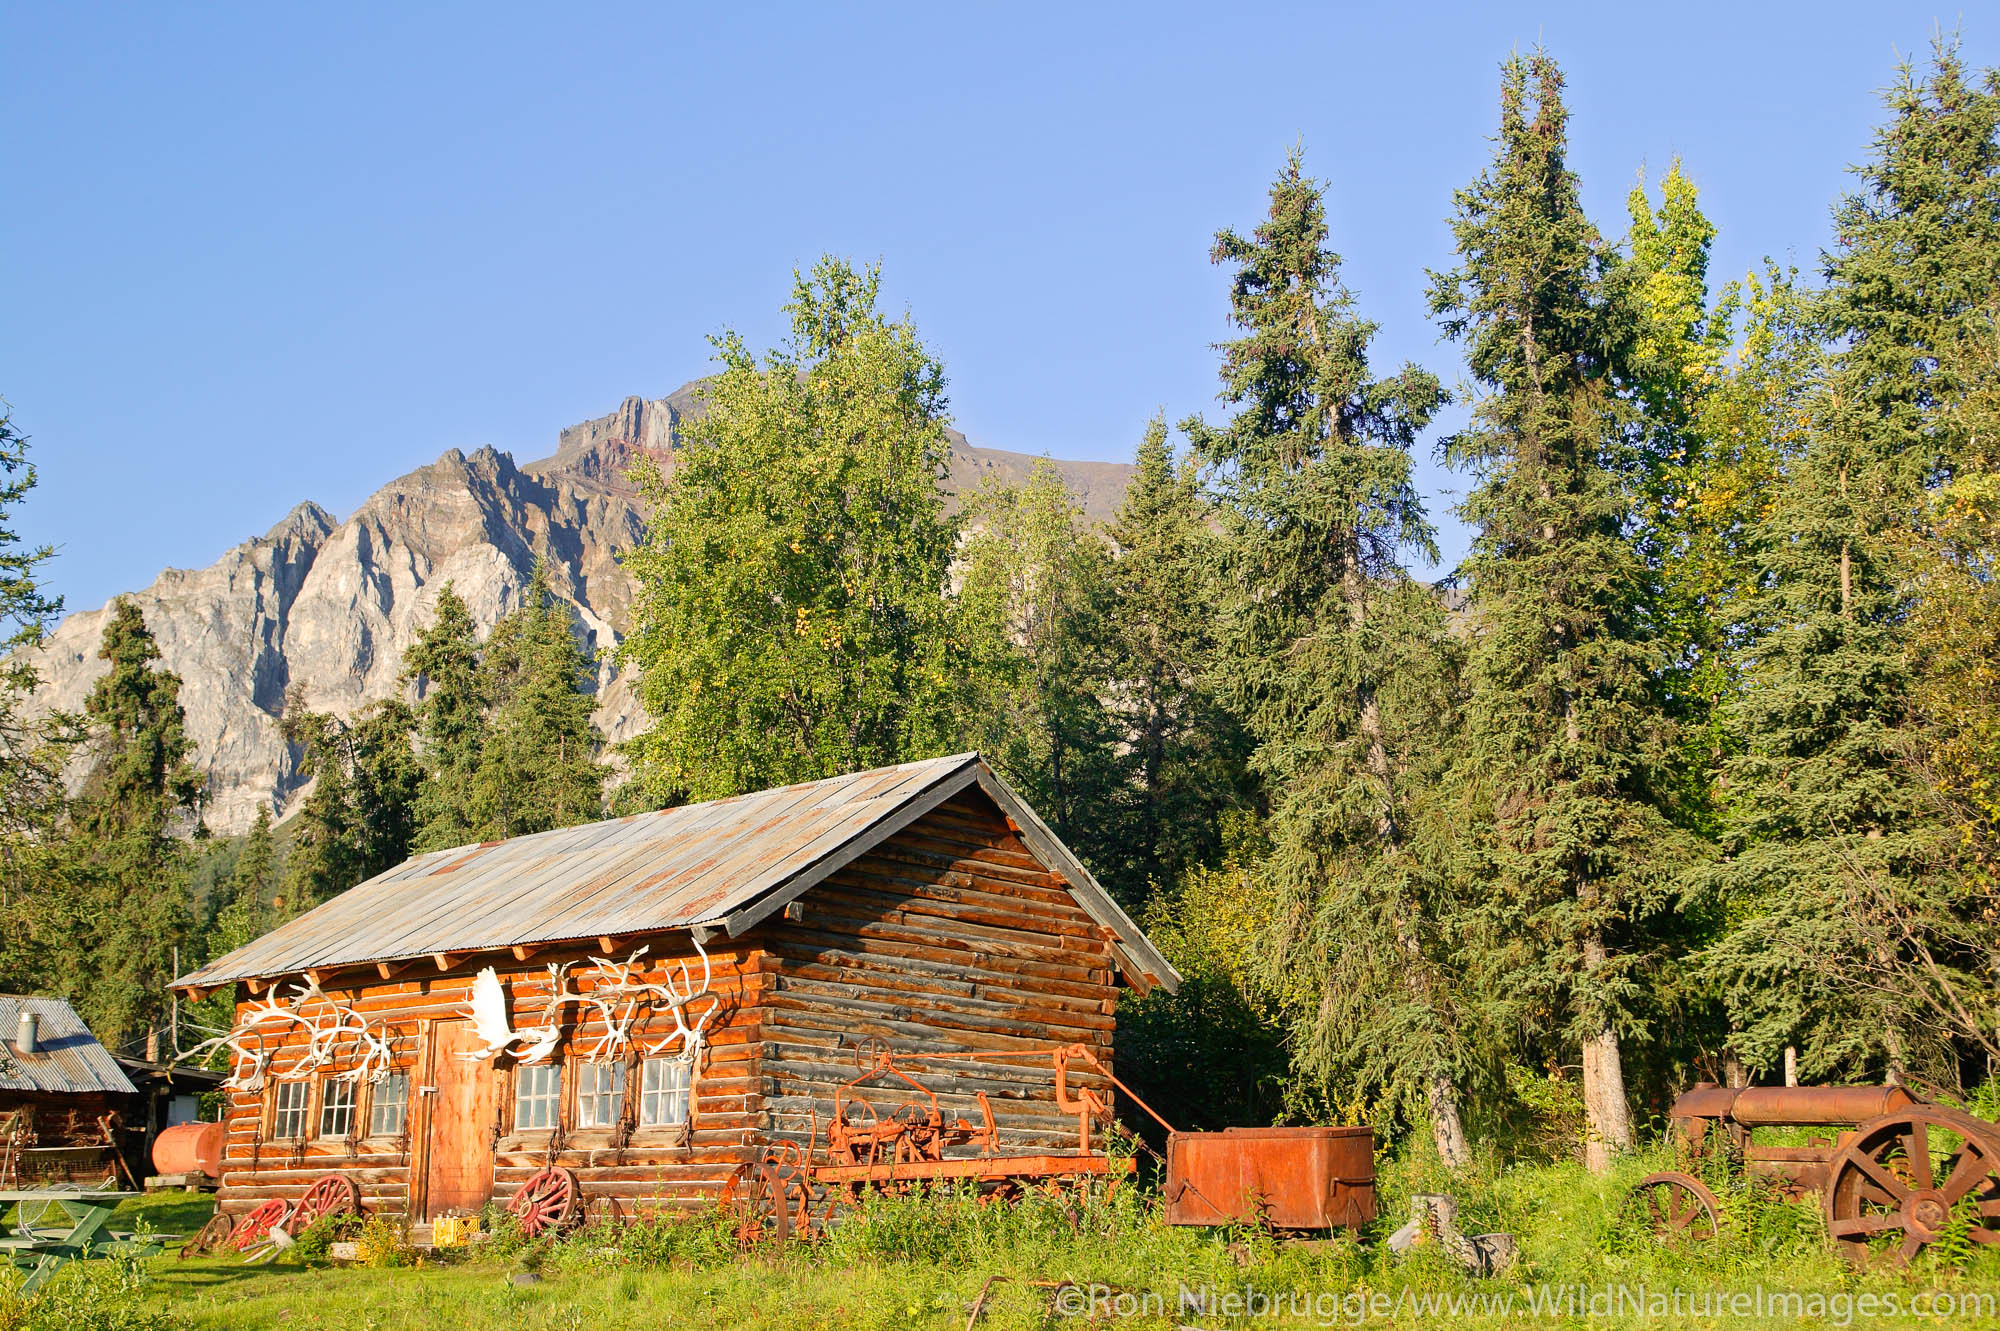 Buildings at the end of the Nabesna Road, Wrangell-St Elias National Park, Alaska.